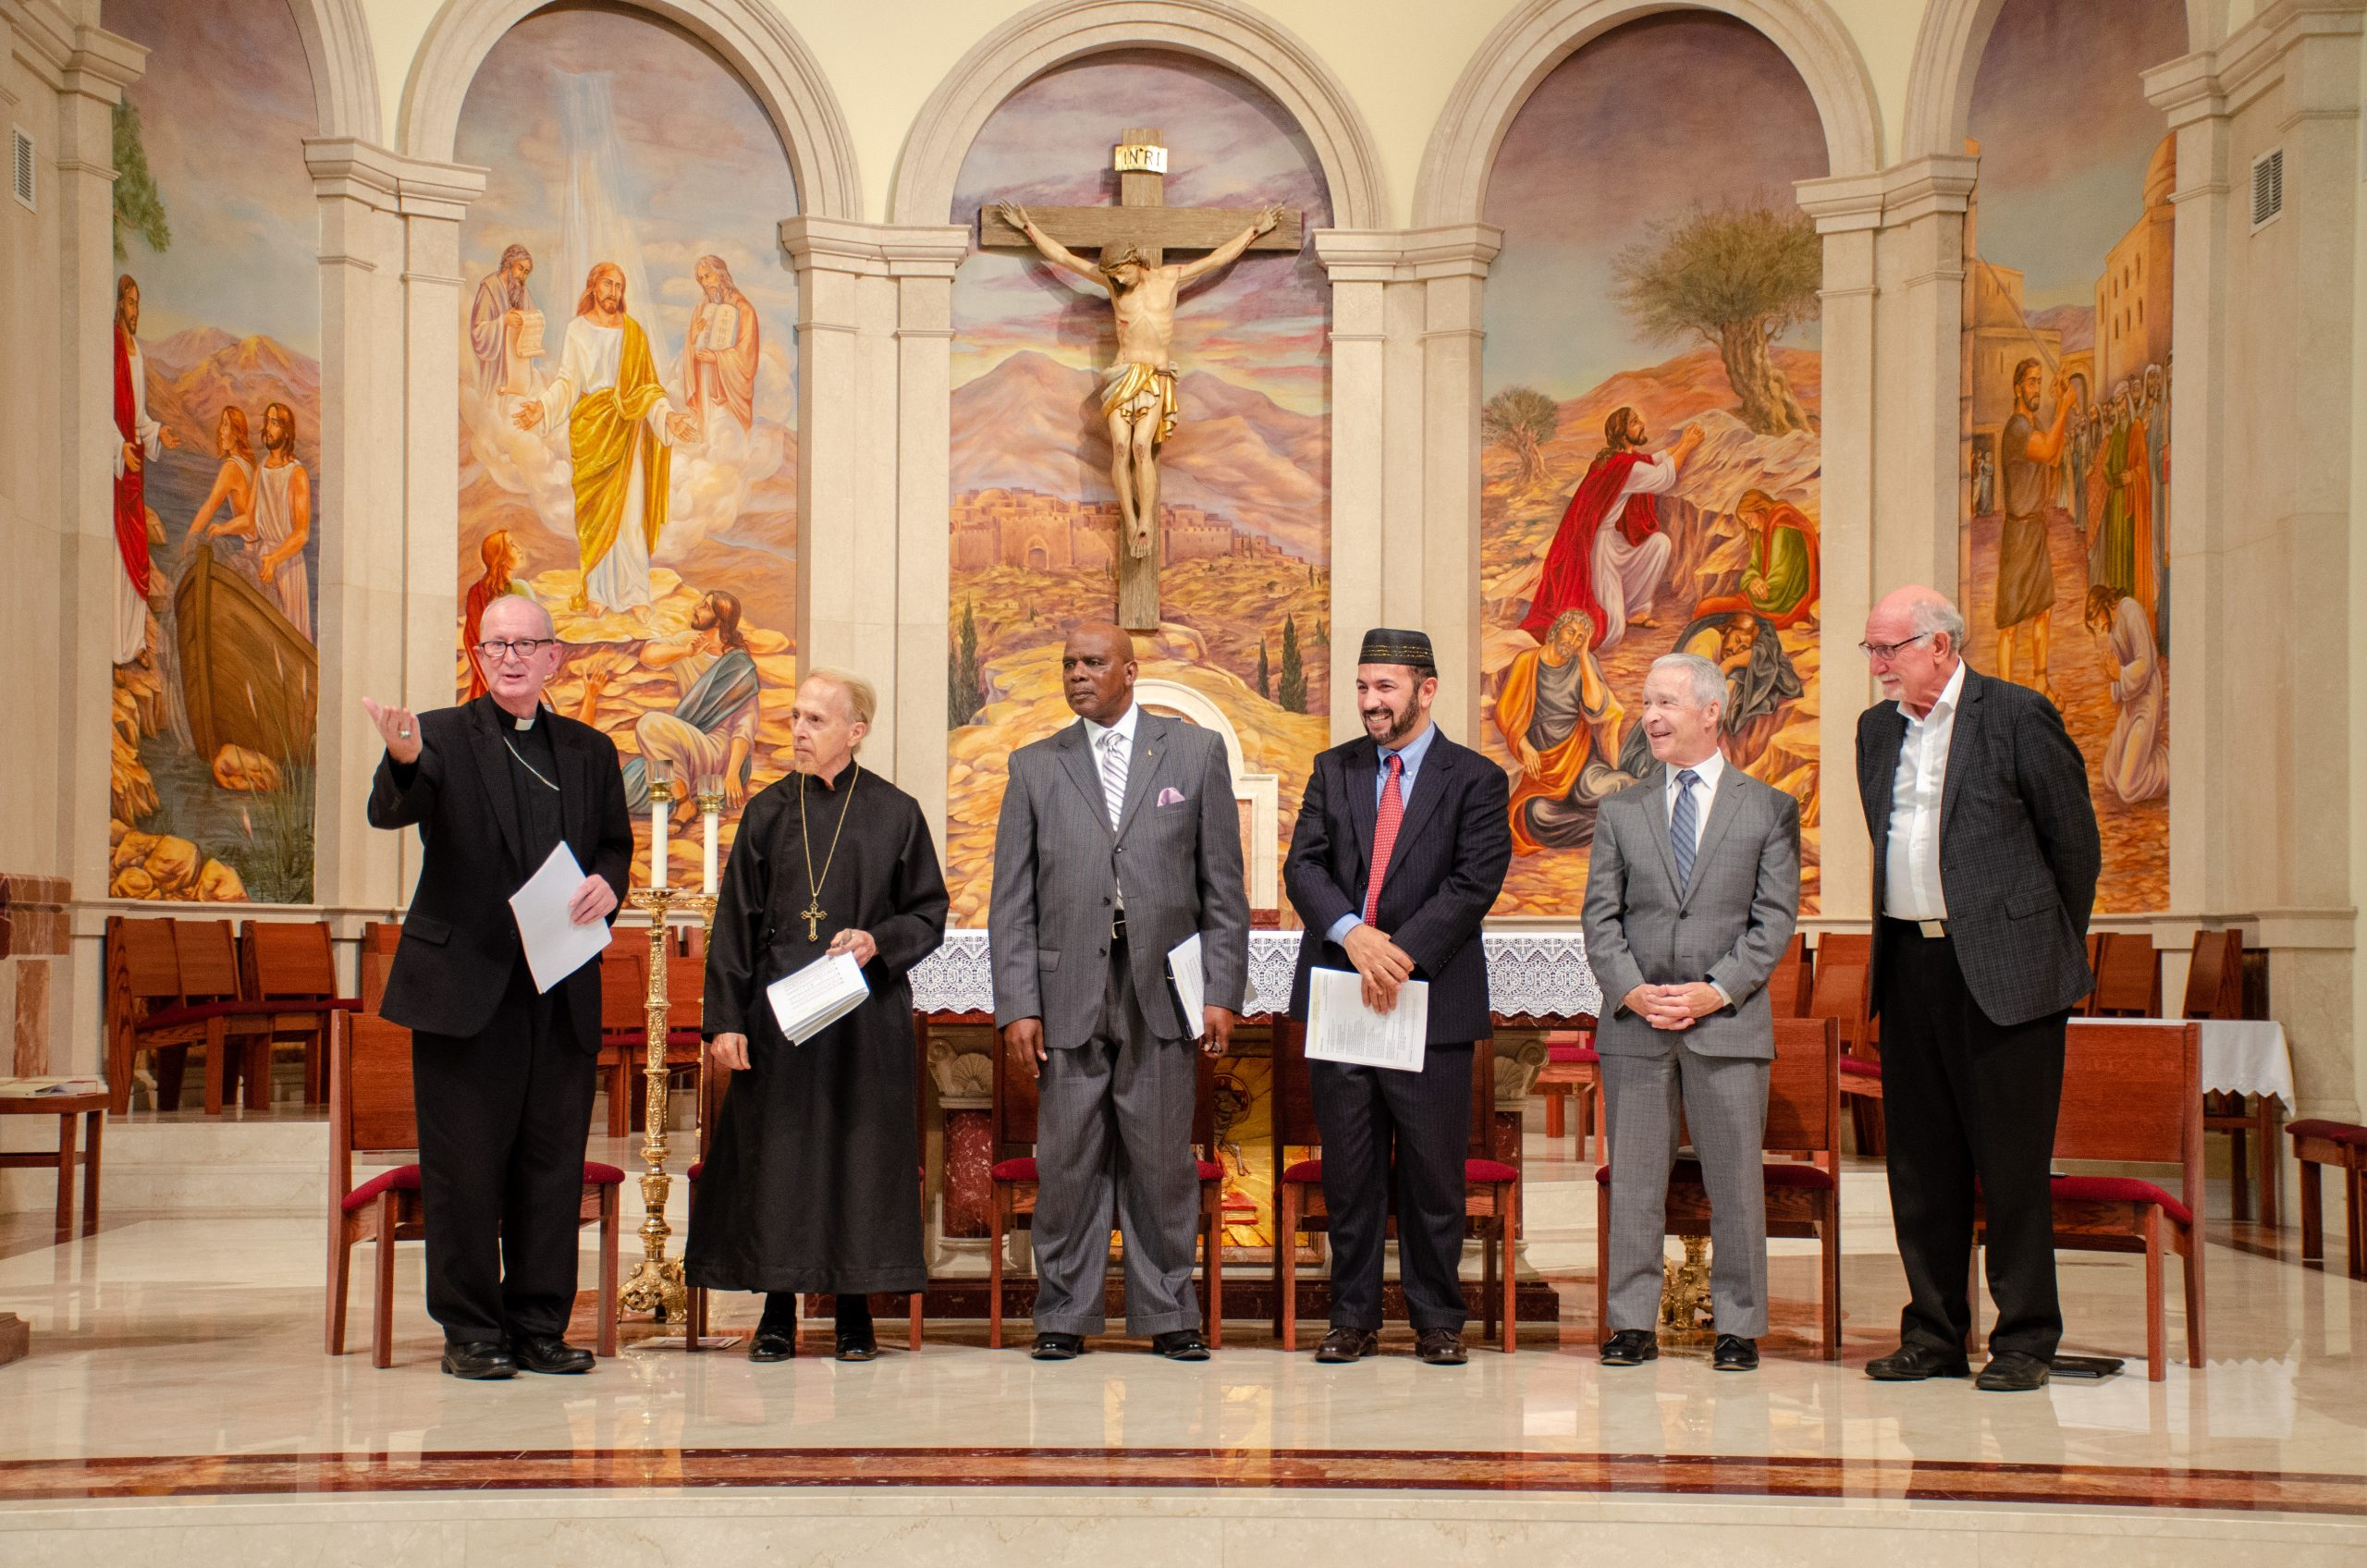 Celebrating faith and friendship on the 50th Anniversary of the Diocese of Orlando